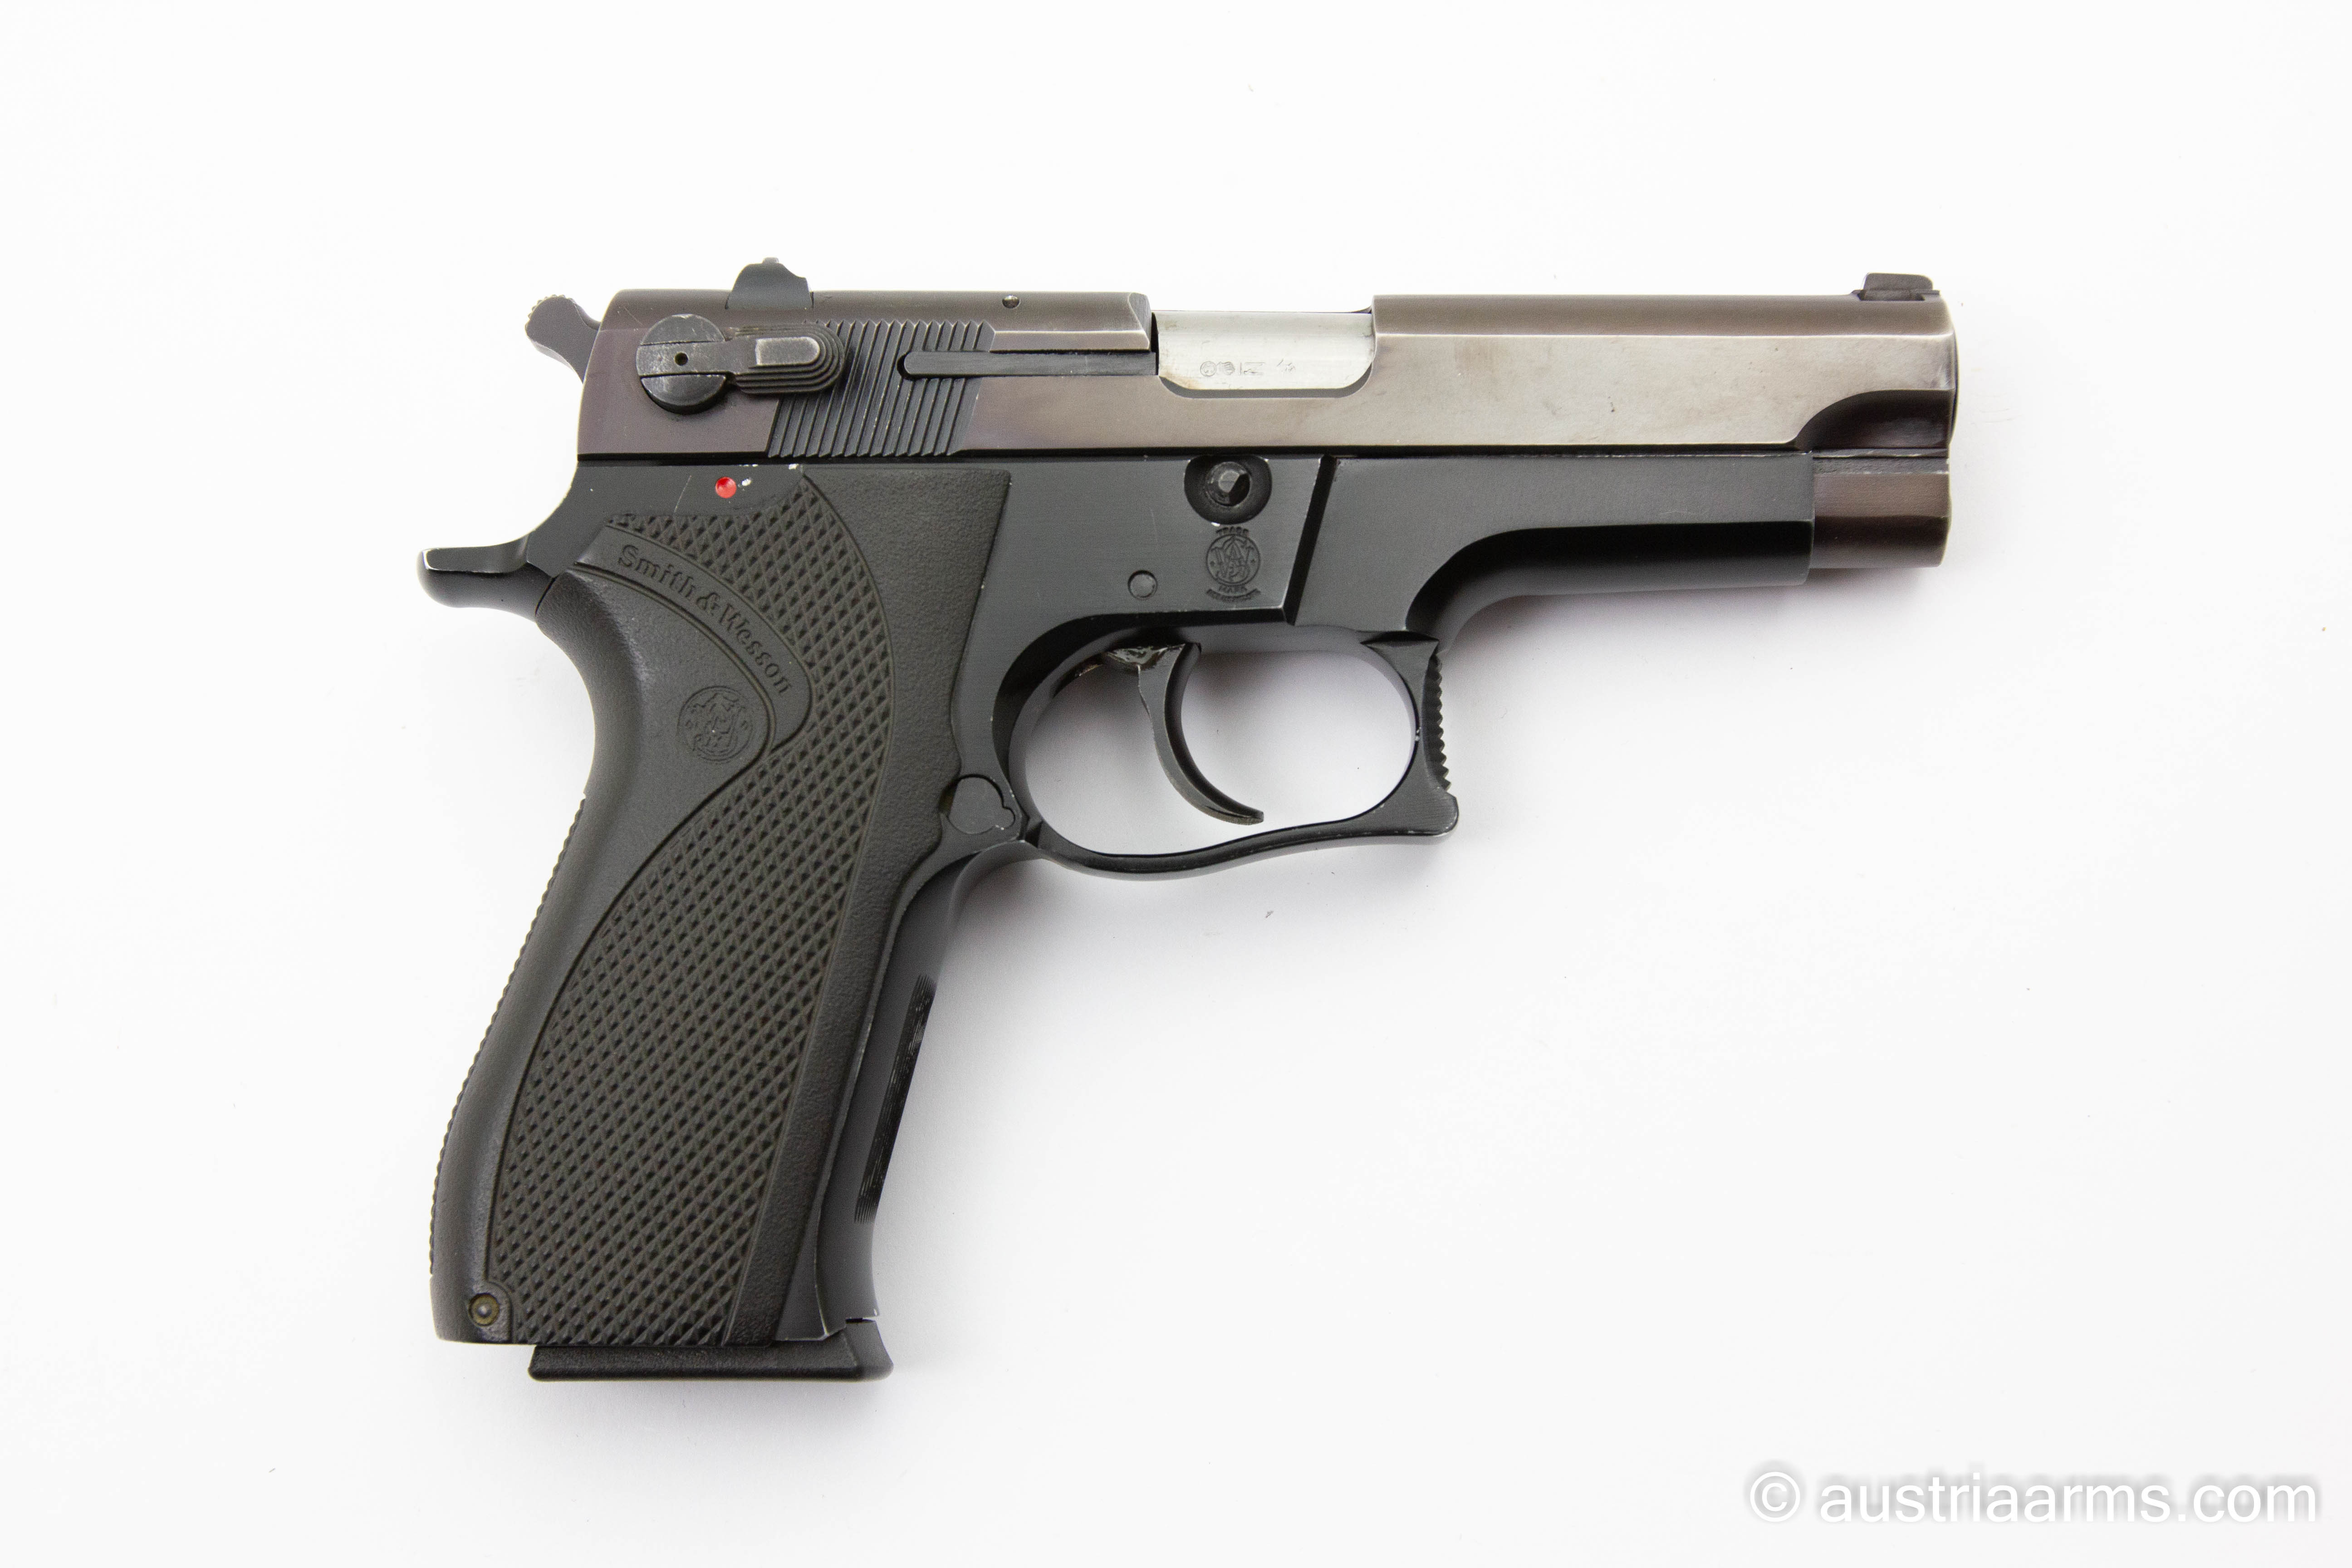 Smith & Wesson 5904, 9 x 19 mm - Image 4